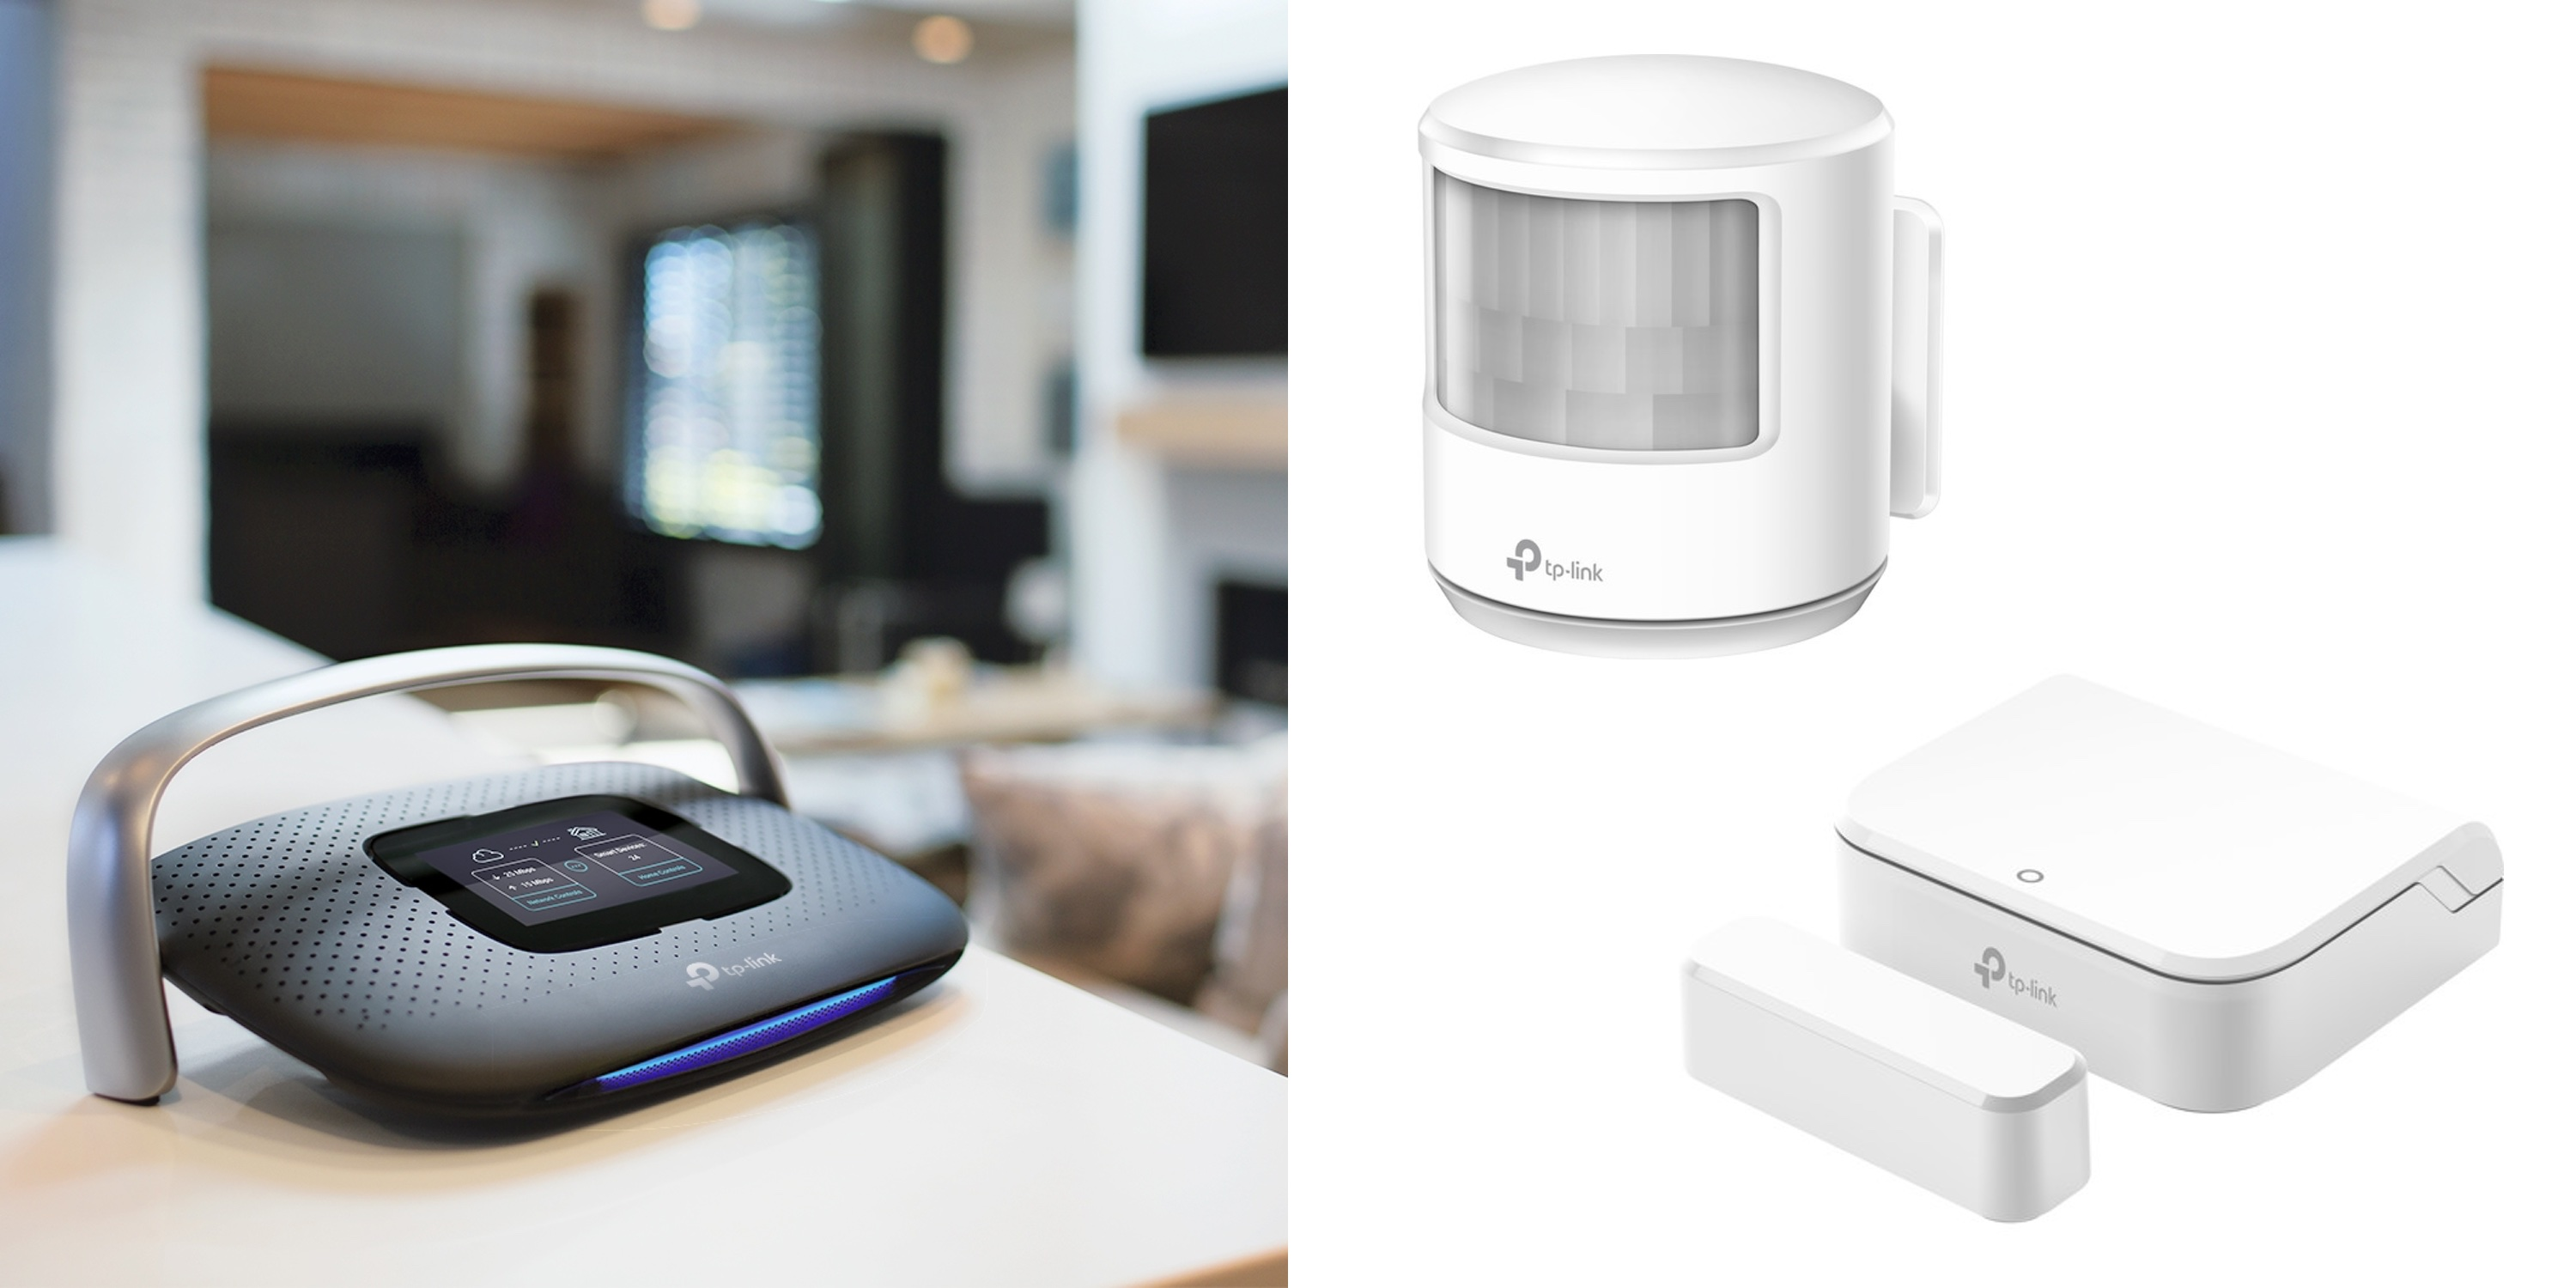 Lowe's shutting down Iris, our recommended alternatives - 9to5Toys